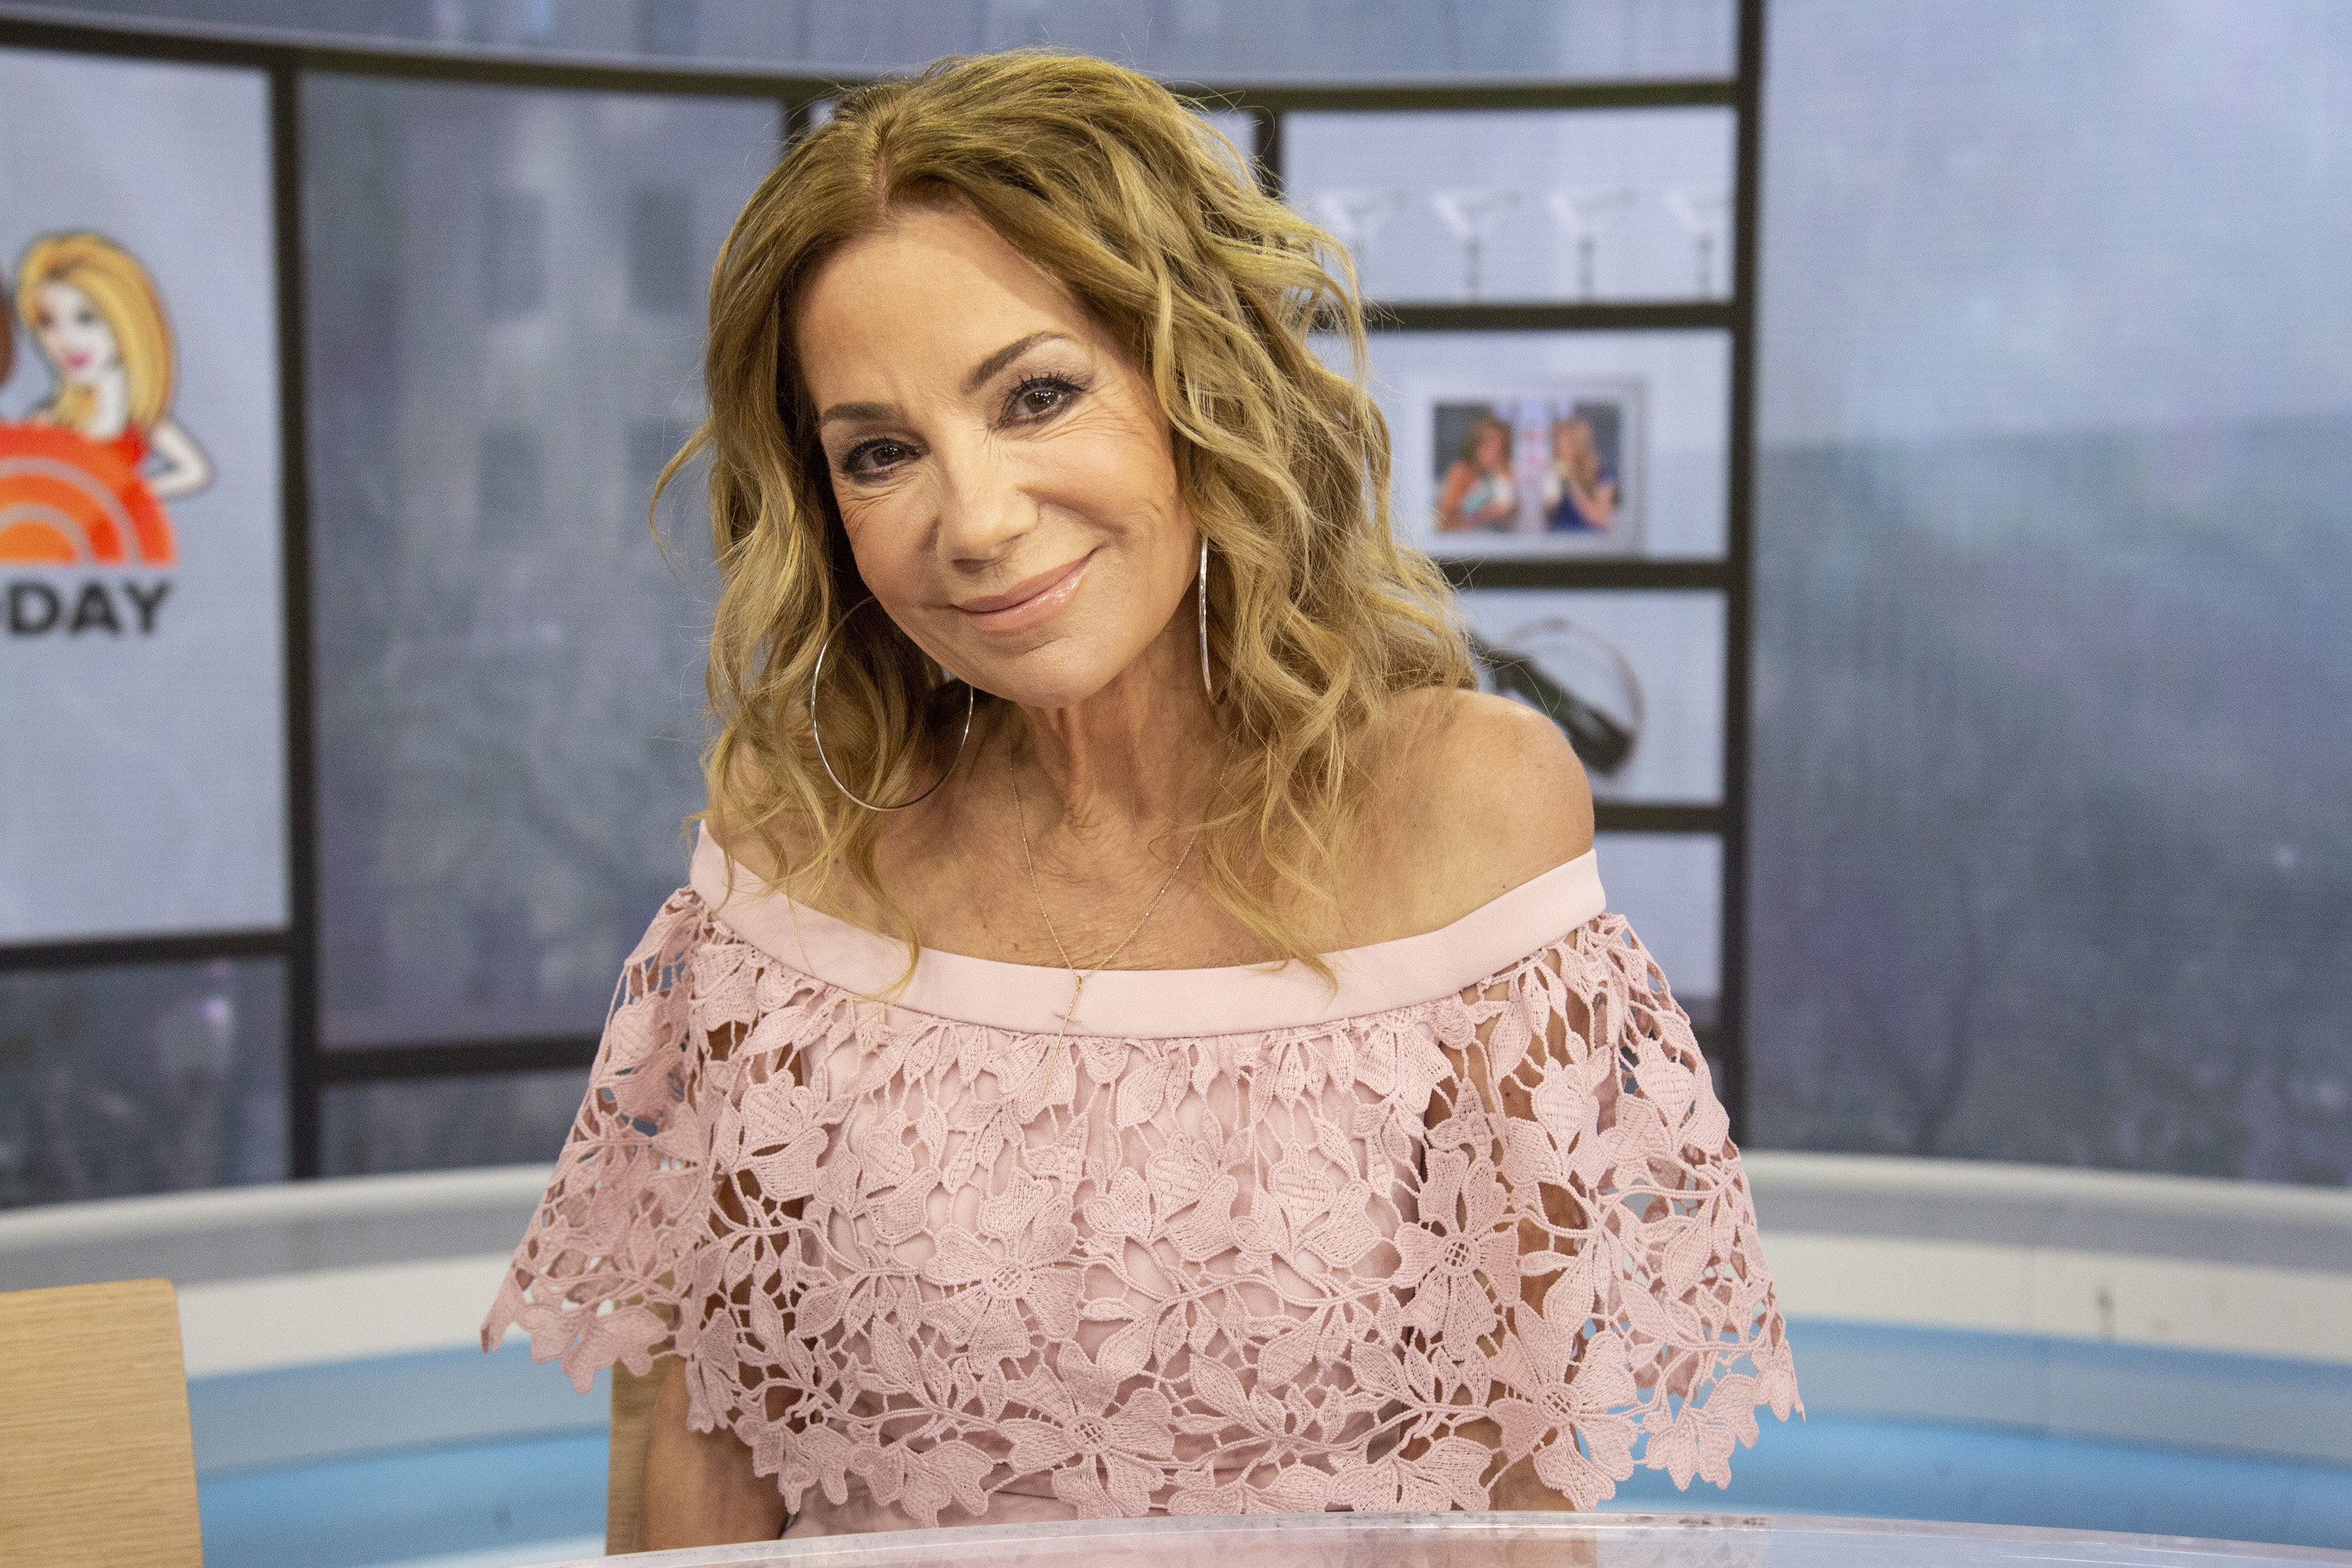 TV host Kathie Lee Gifford.   Photo: Getty Images